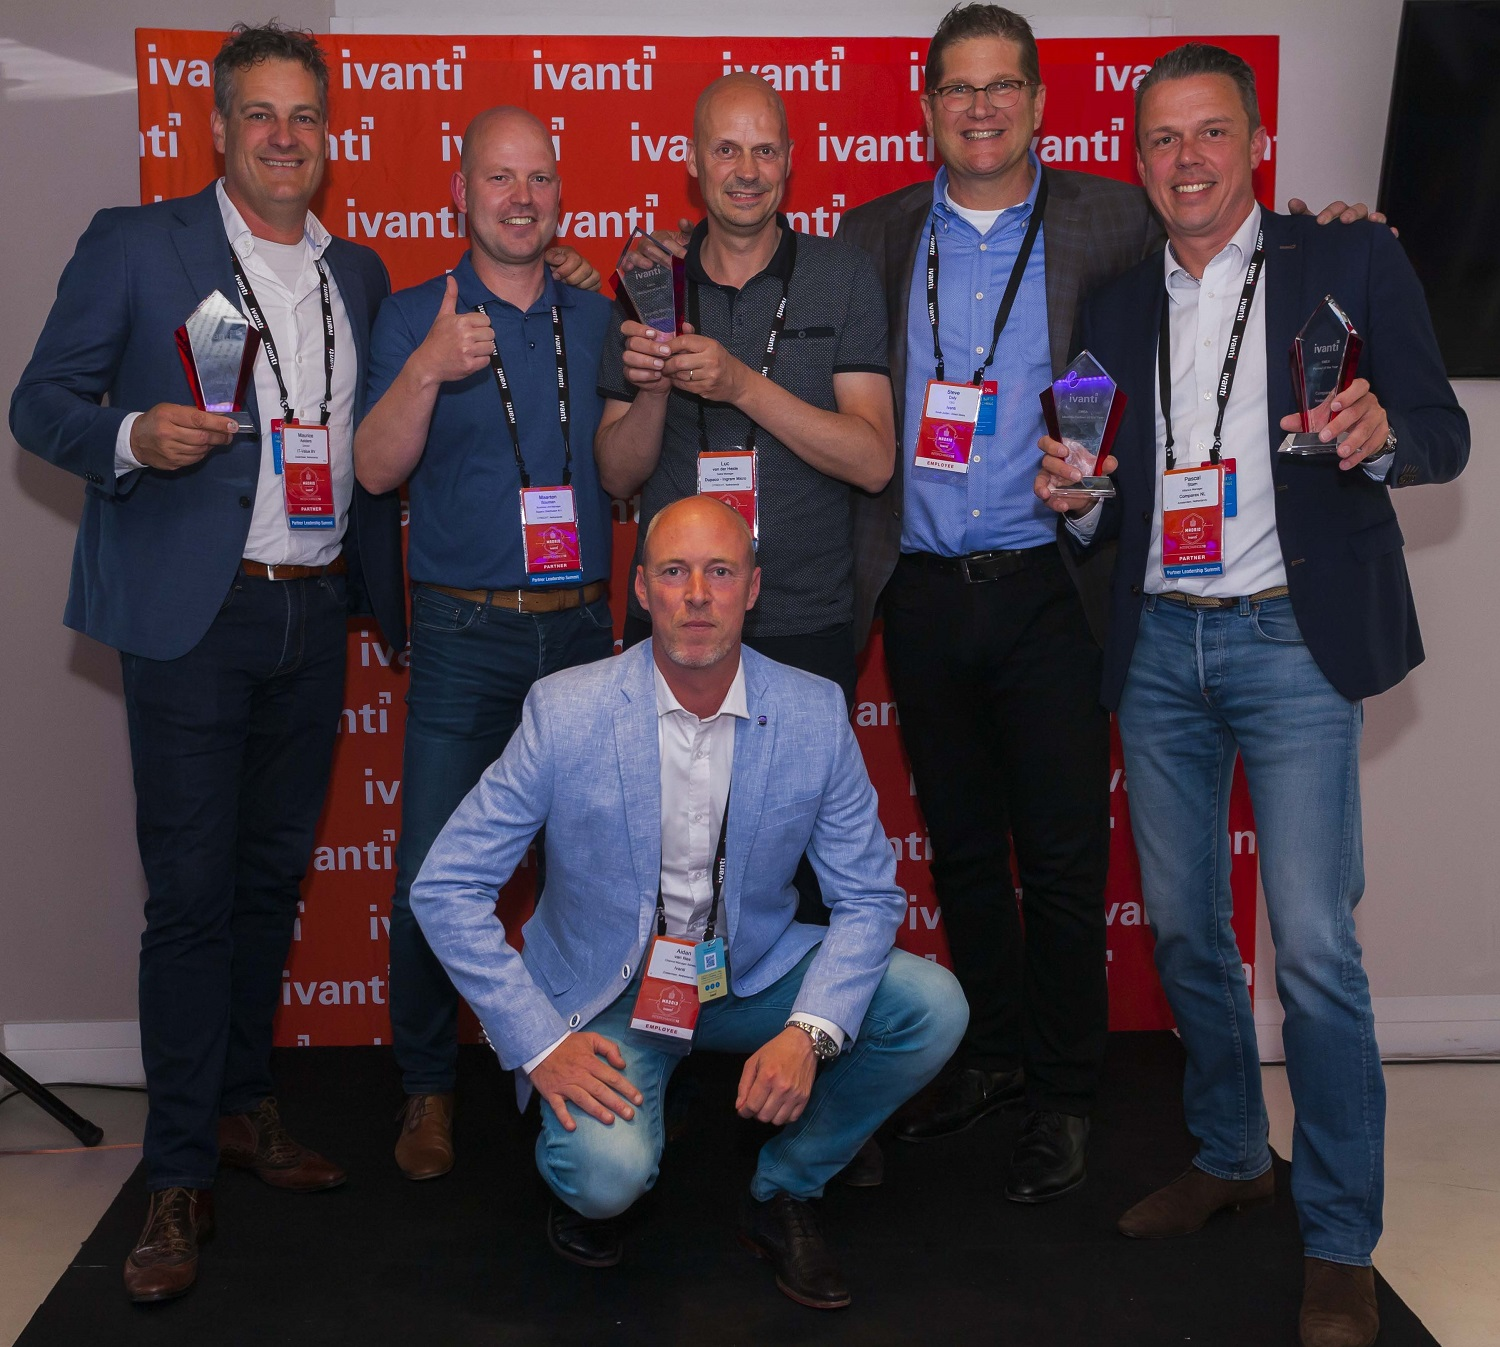 Ivanti beloont partners met de 2018 Partner of the Year Awards